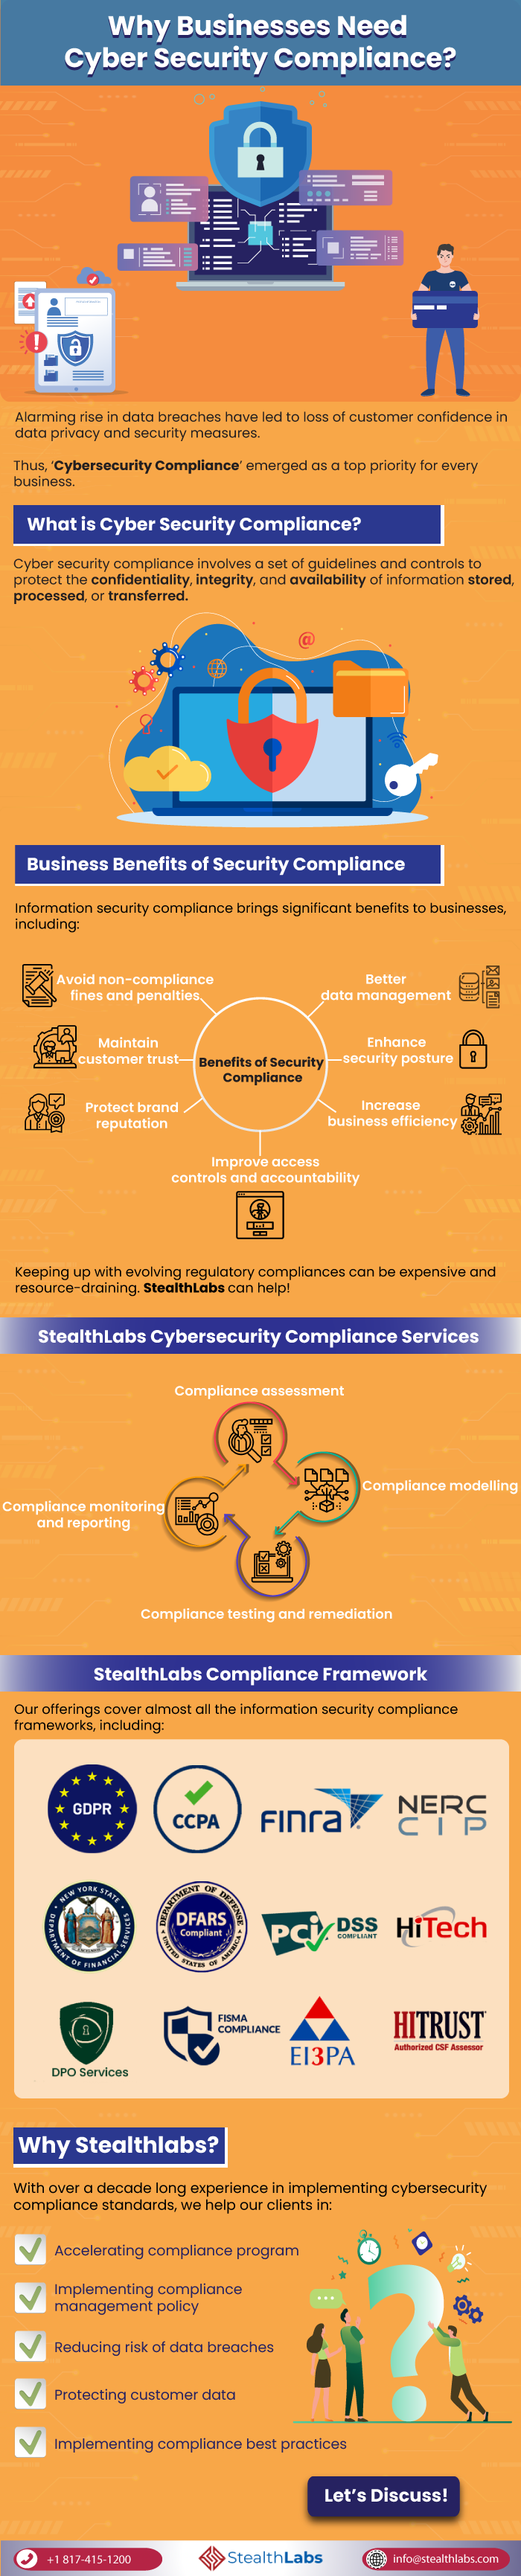 Why Businesses Need Cyber Security Compliance